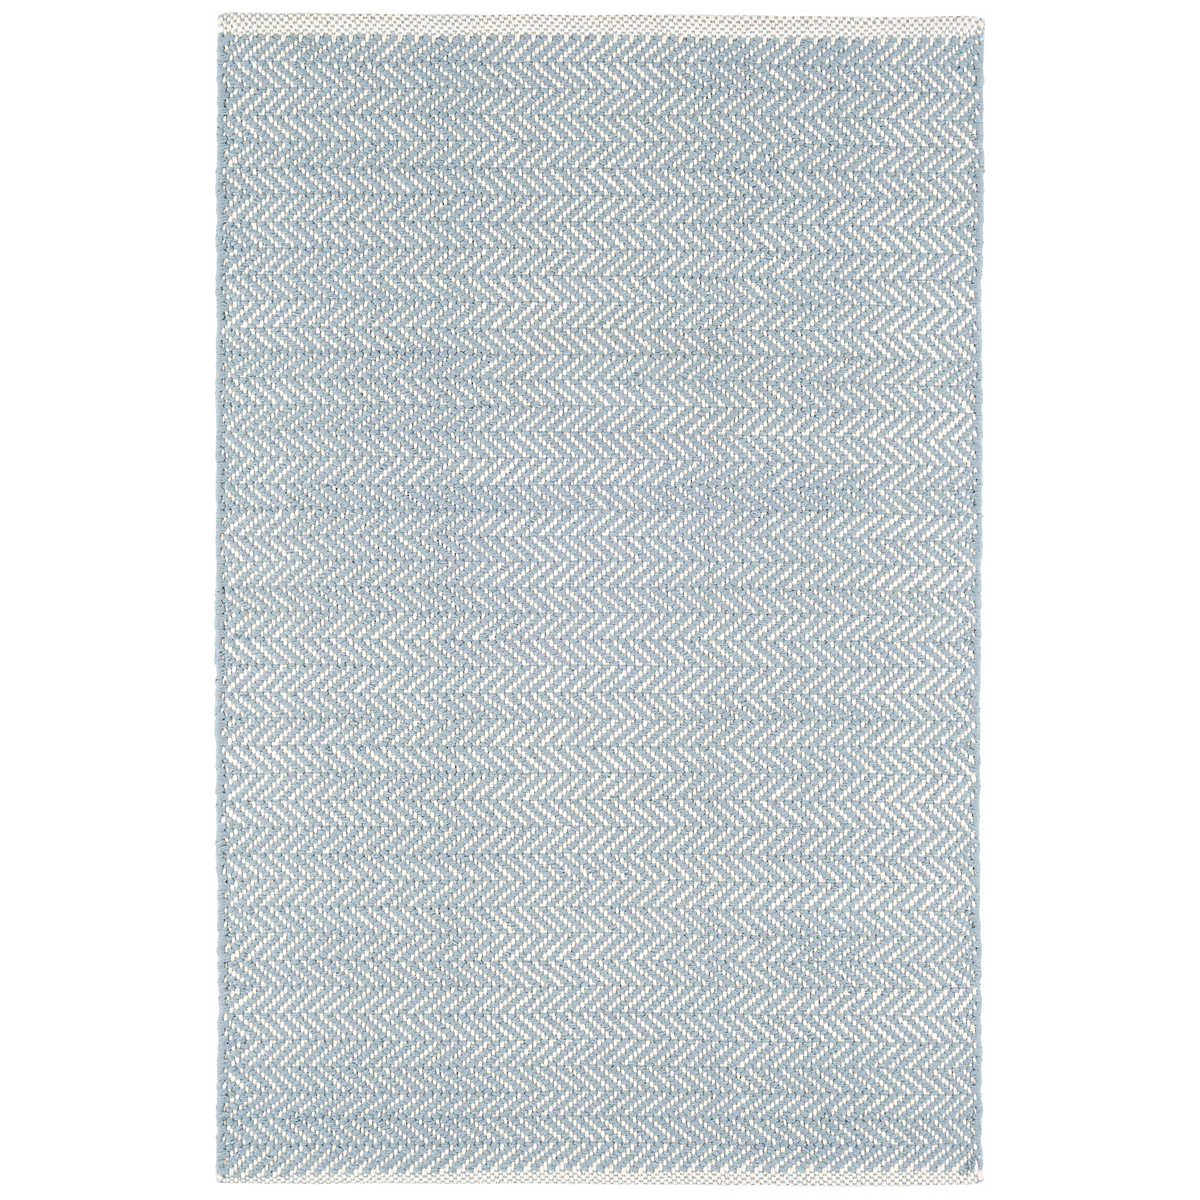 in cotton buy design rug coral dash albert by products woven herringbone